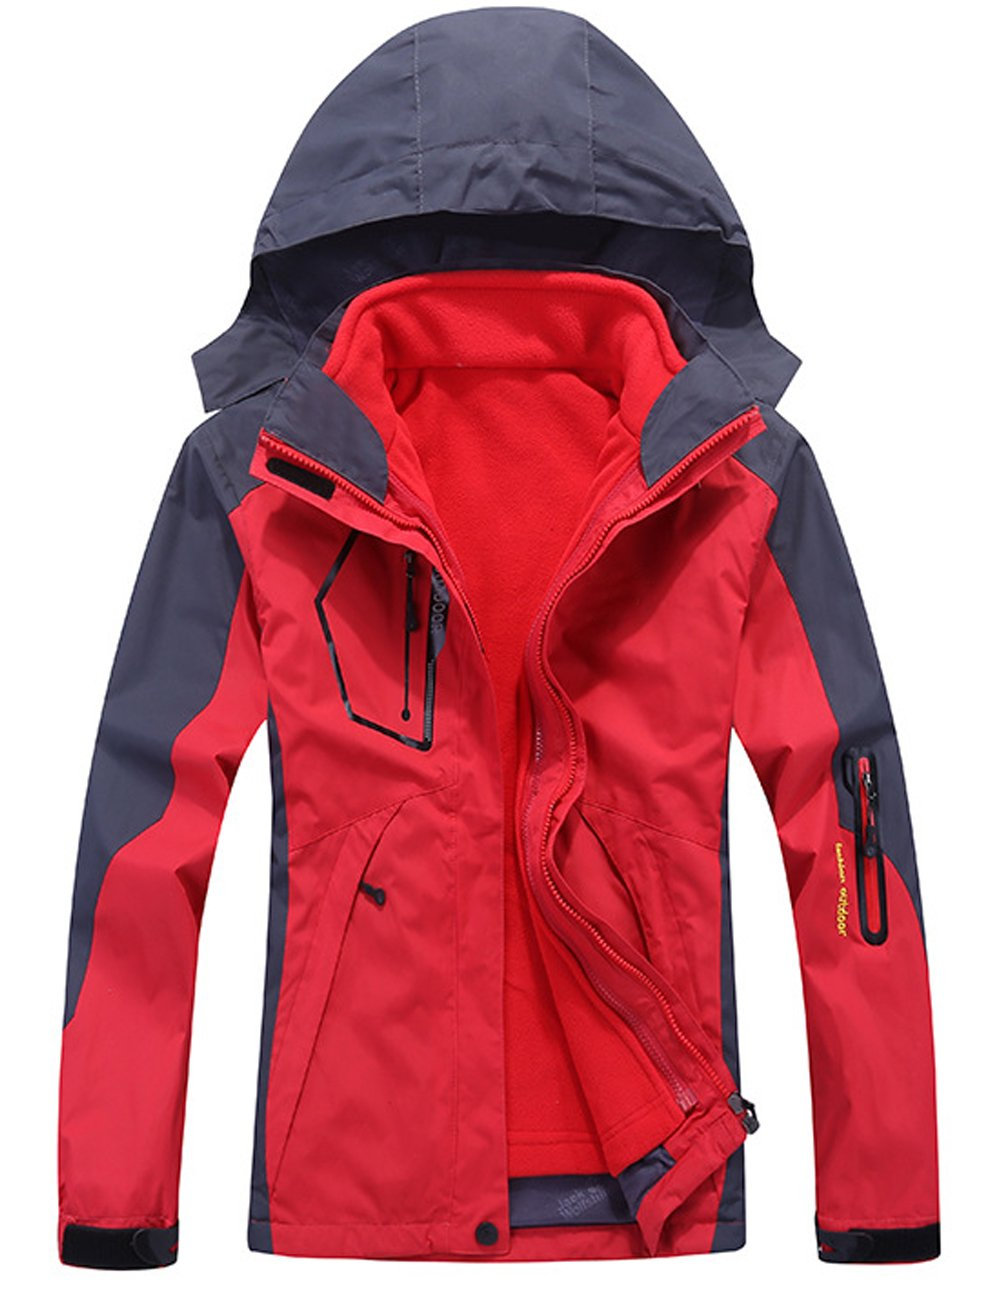 CUKKE OUTERWEAR レディース B0785FF3P4 S|Red Nv1201 Red Nv1201 S